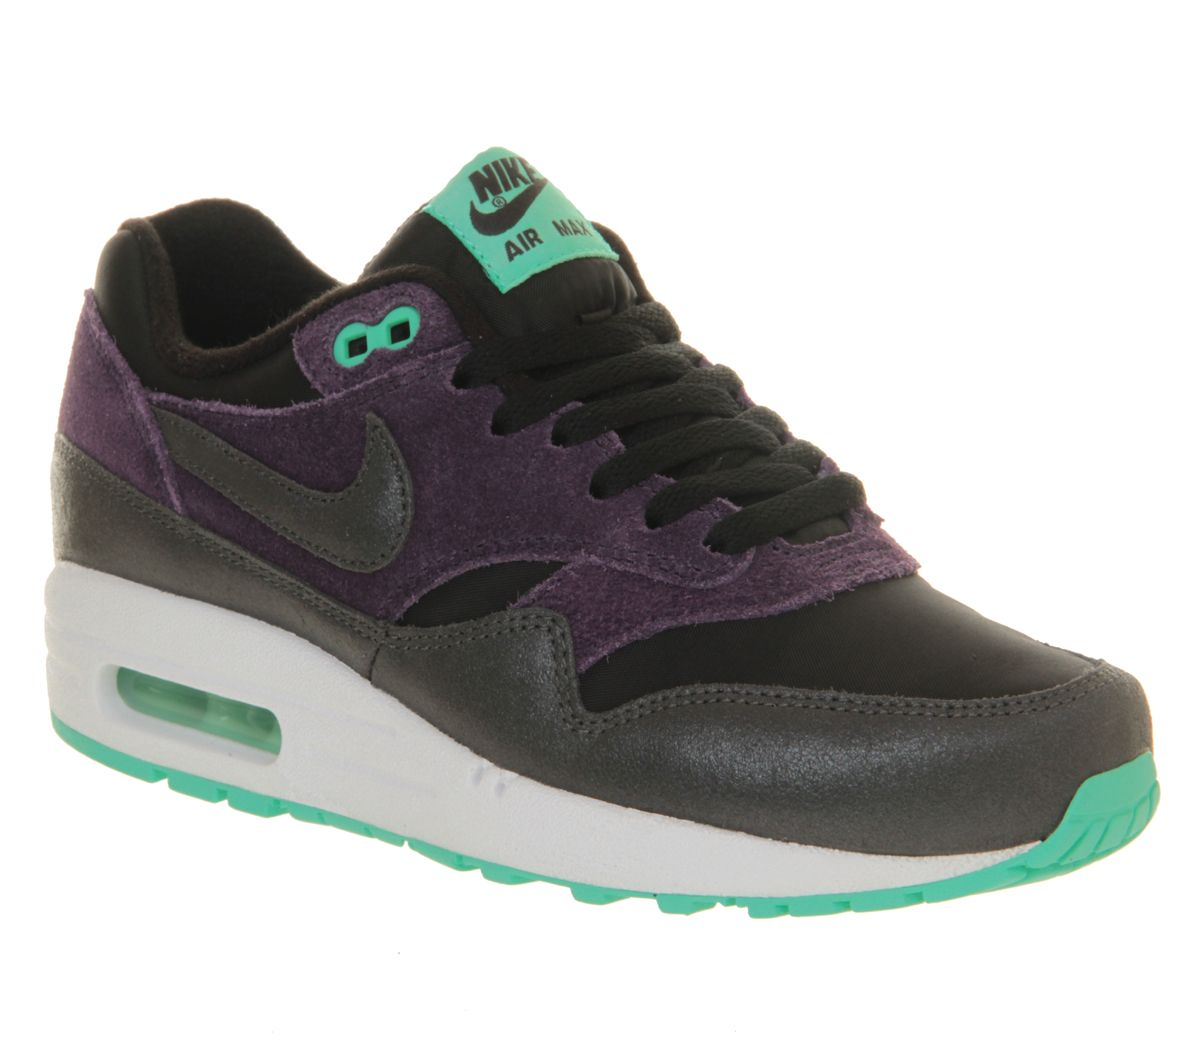 air max 1 black purple mint